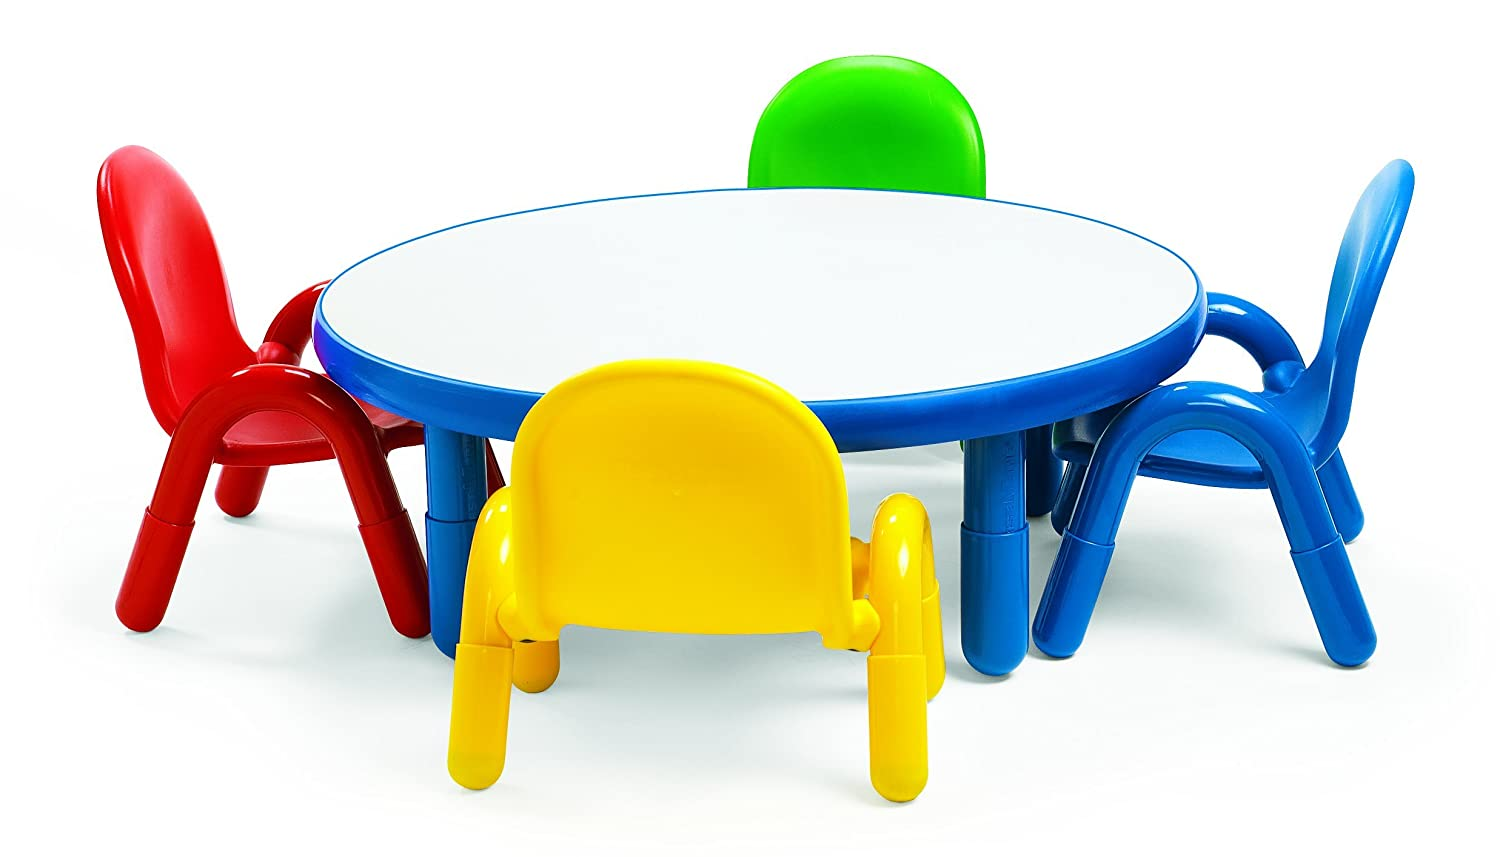 preschool table and chair set. preschool table and chair set t  sc 1 th 170 & Preschool Table And Chair Set. Preschool Table And Chair Set T ...